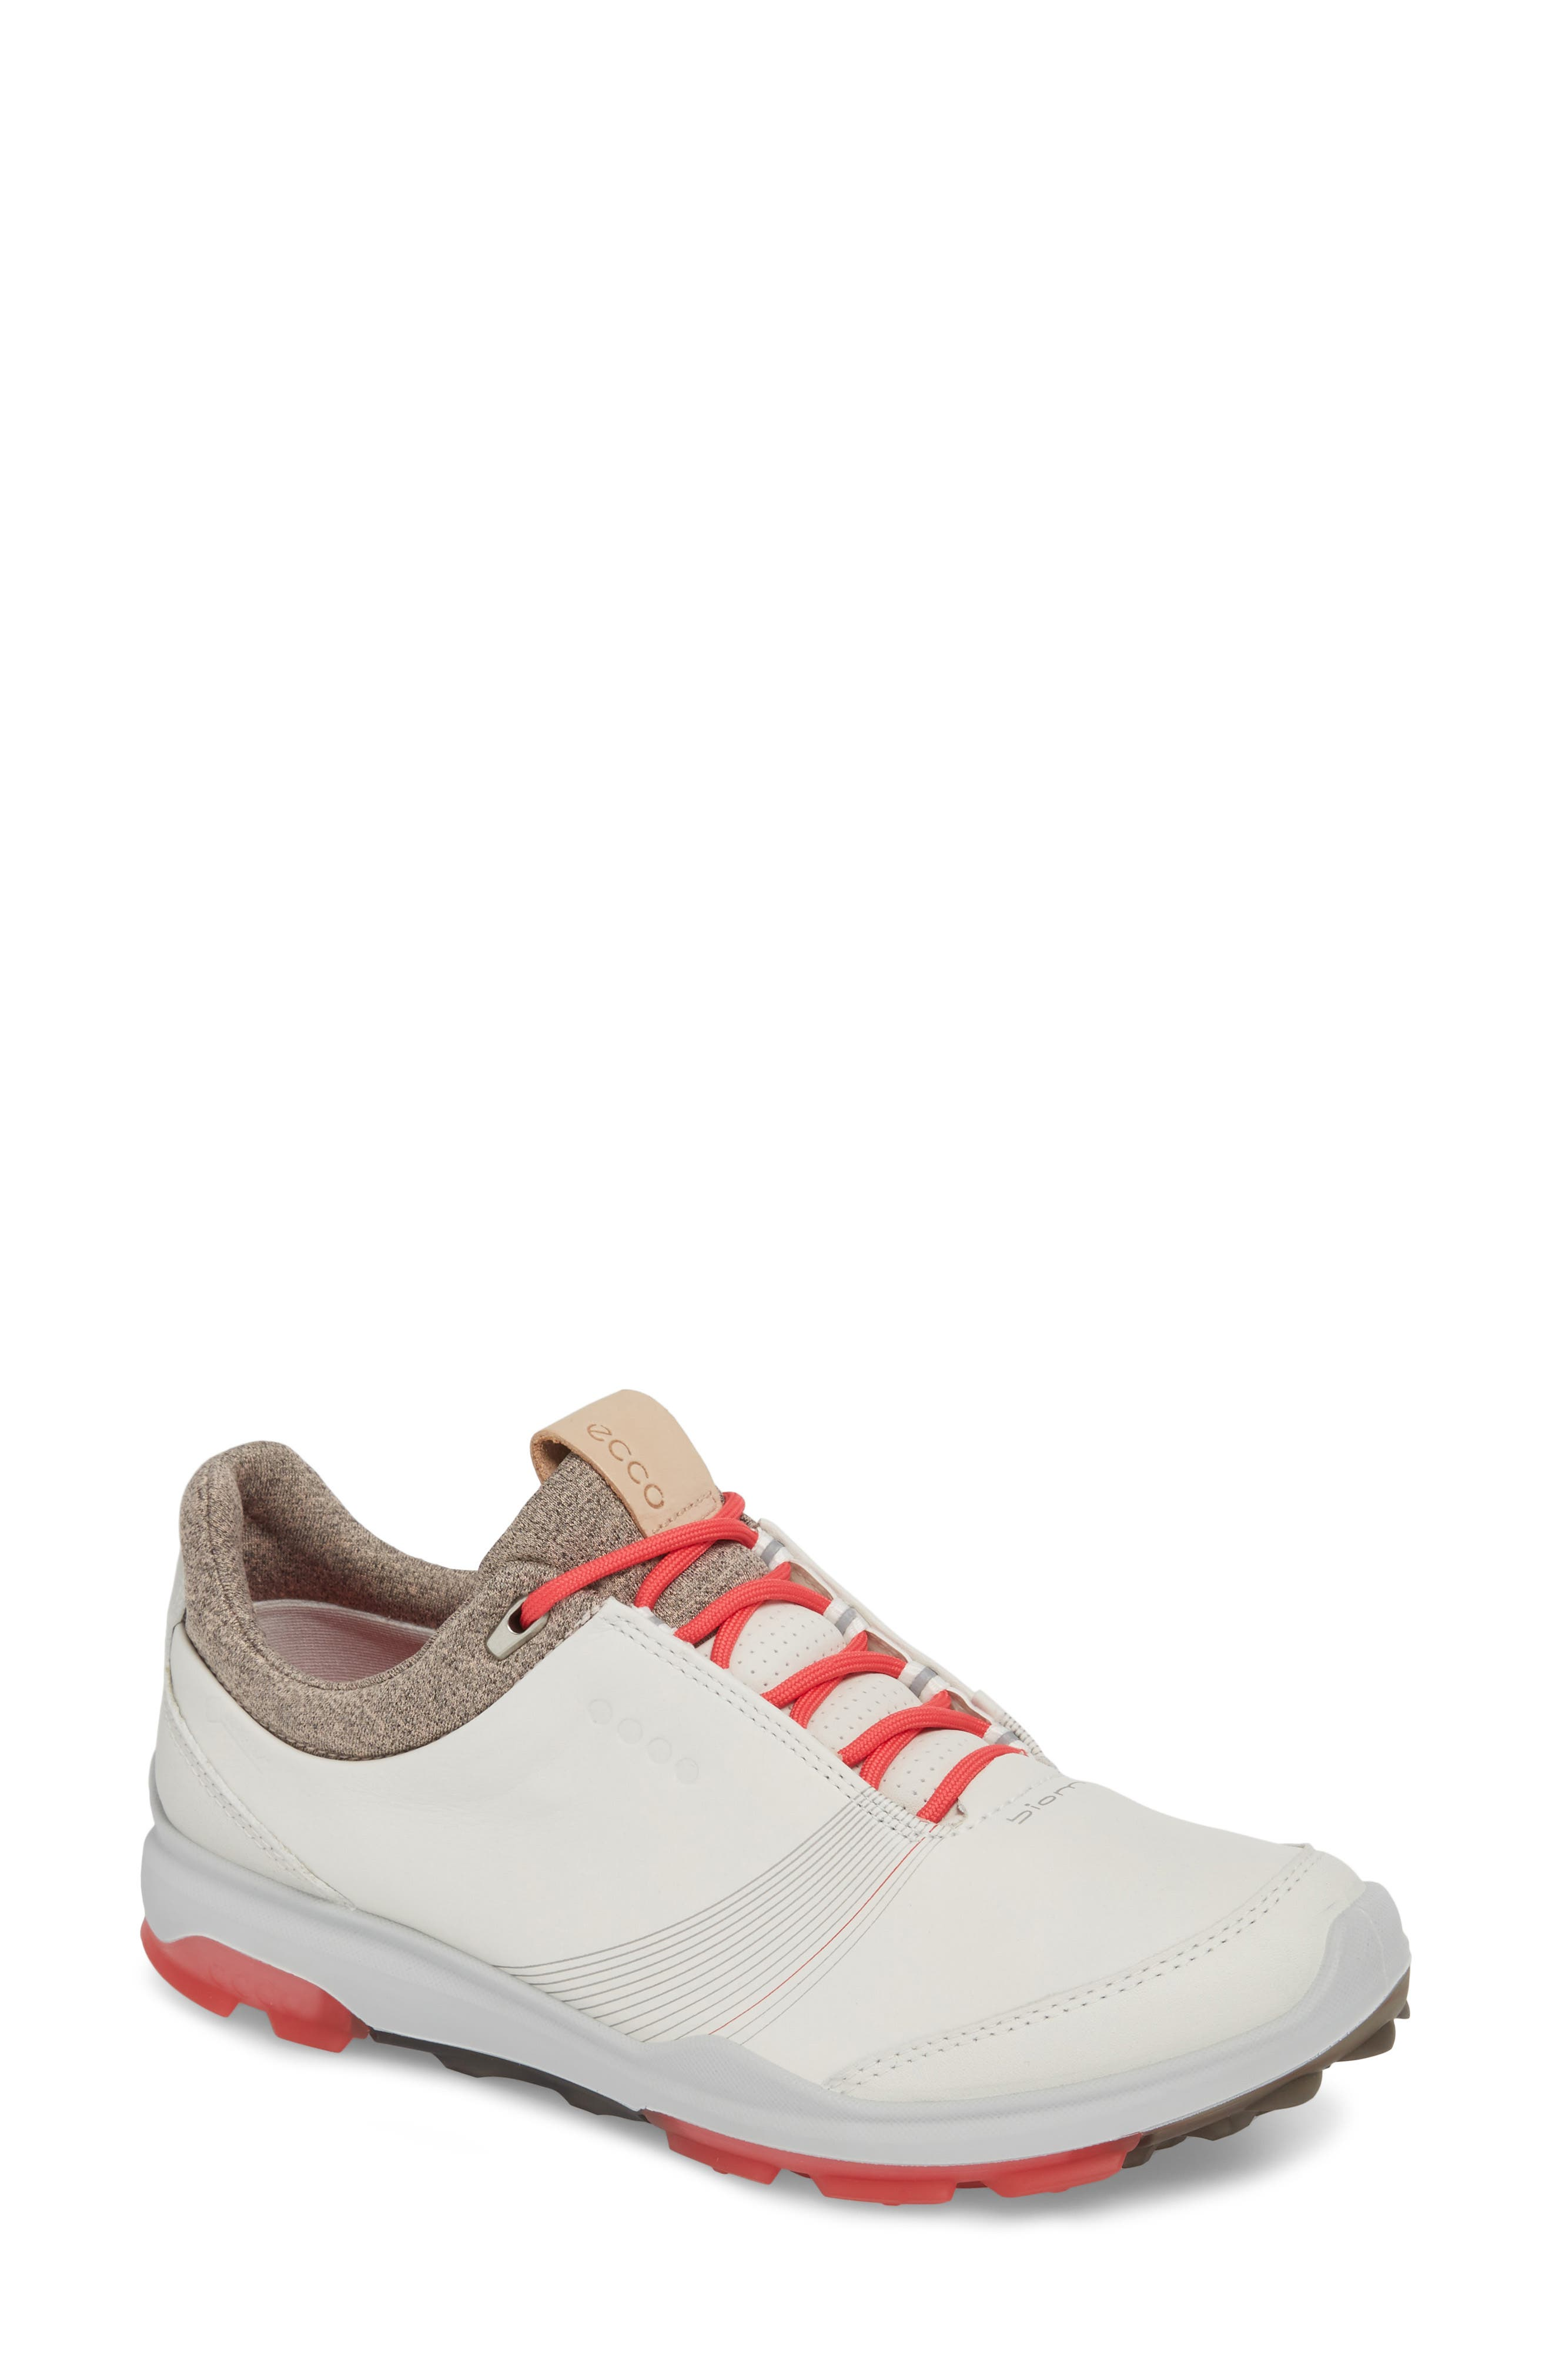 ECCO BIOM 2 Hybrid Gore-Tex® Golf Shoe (Women)